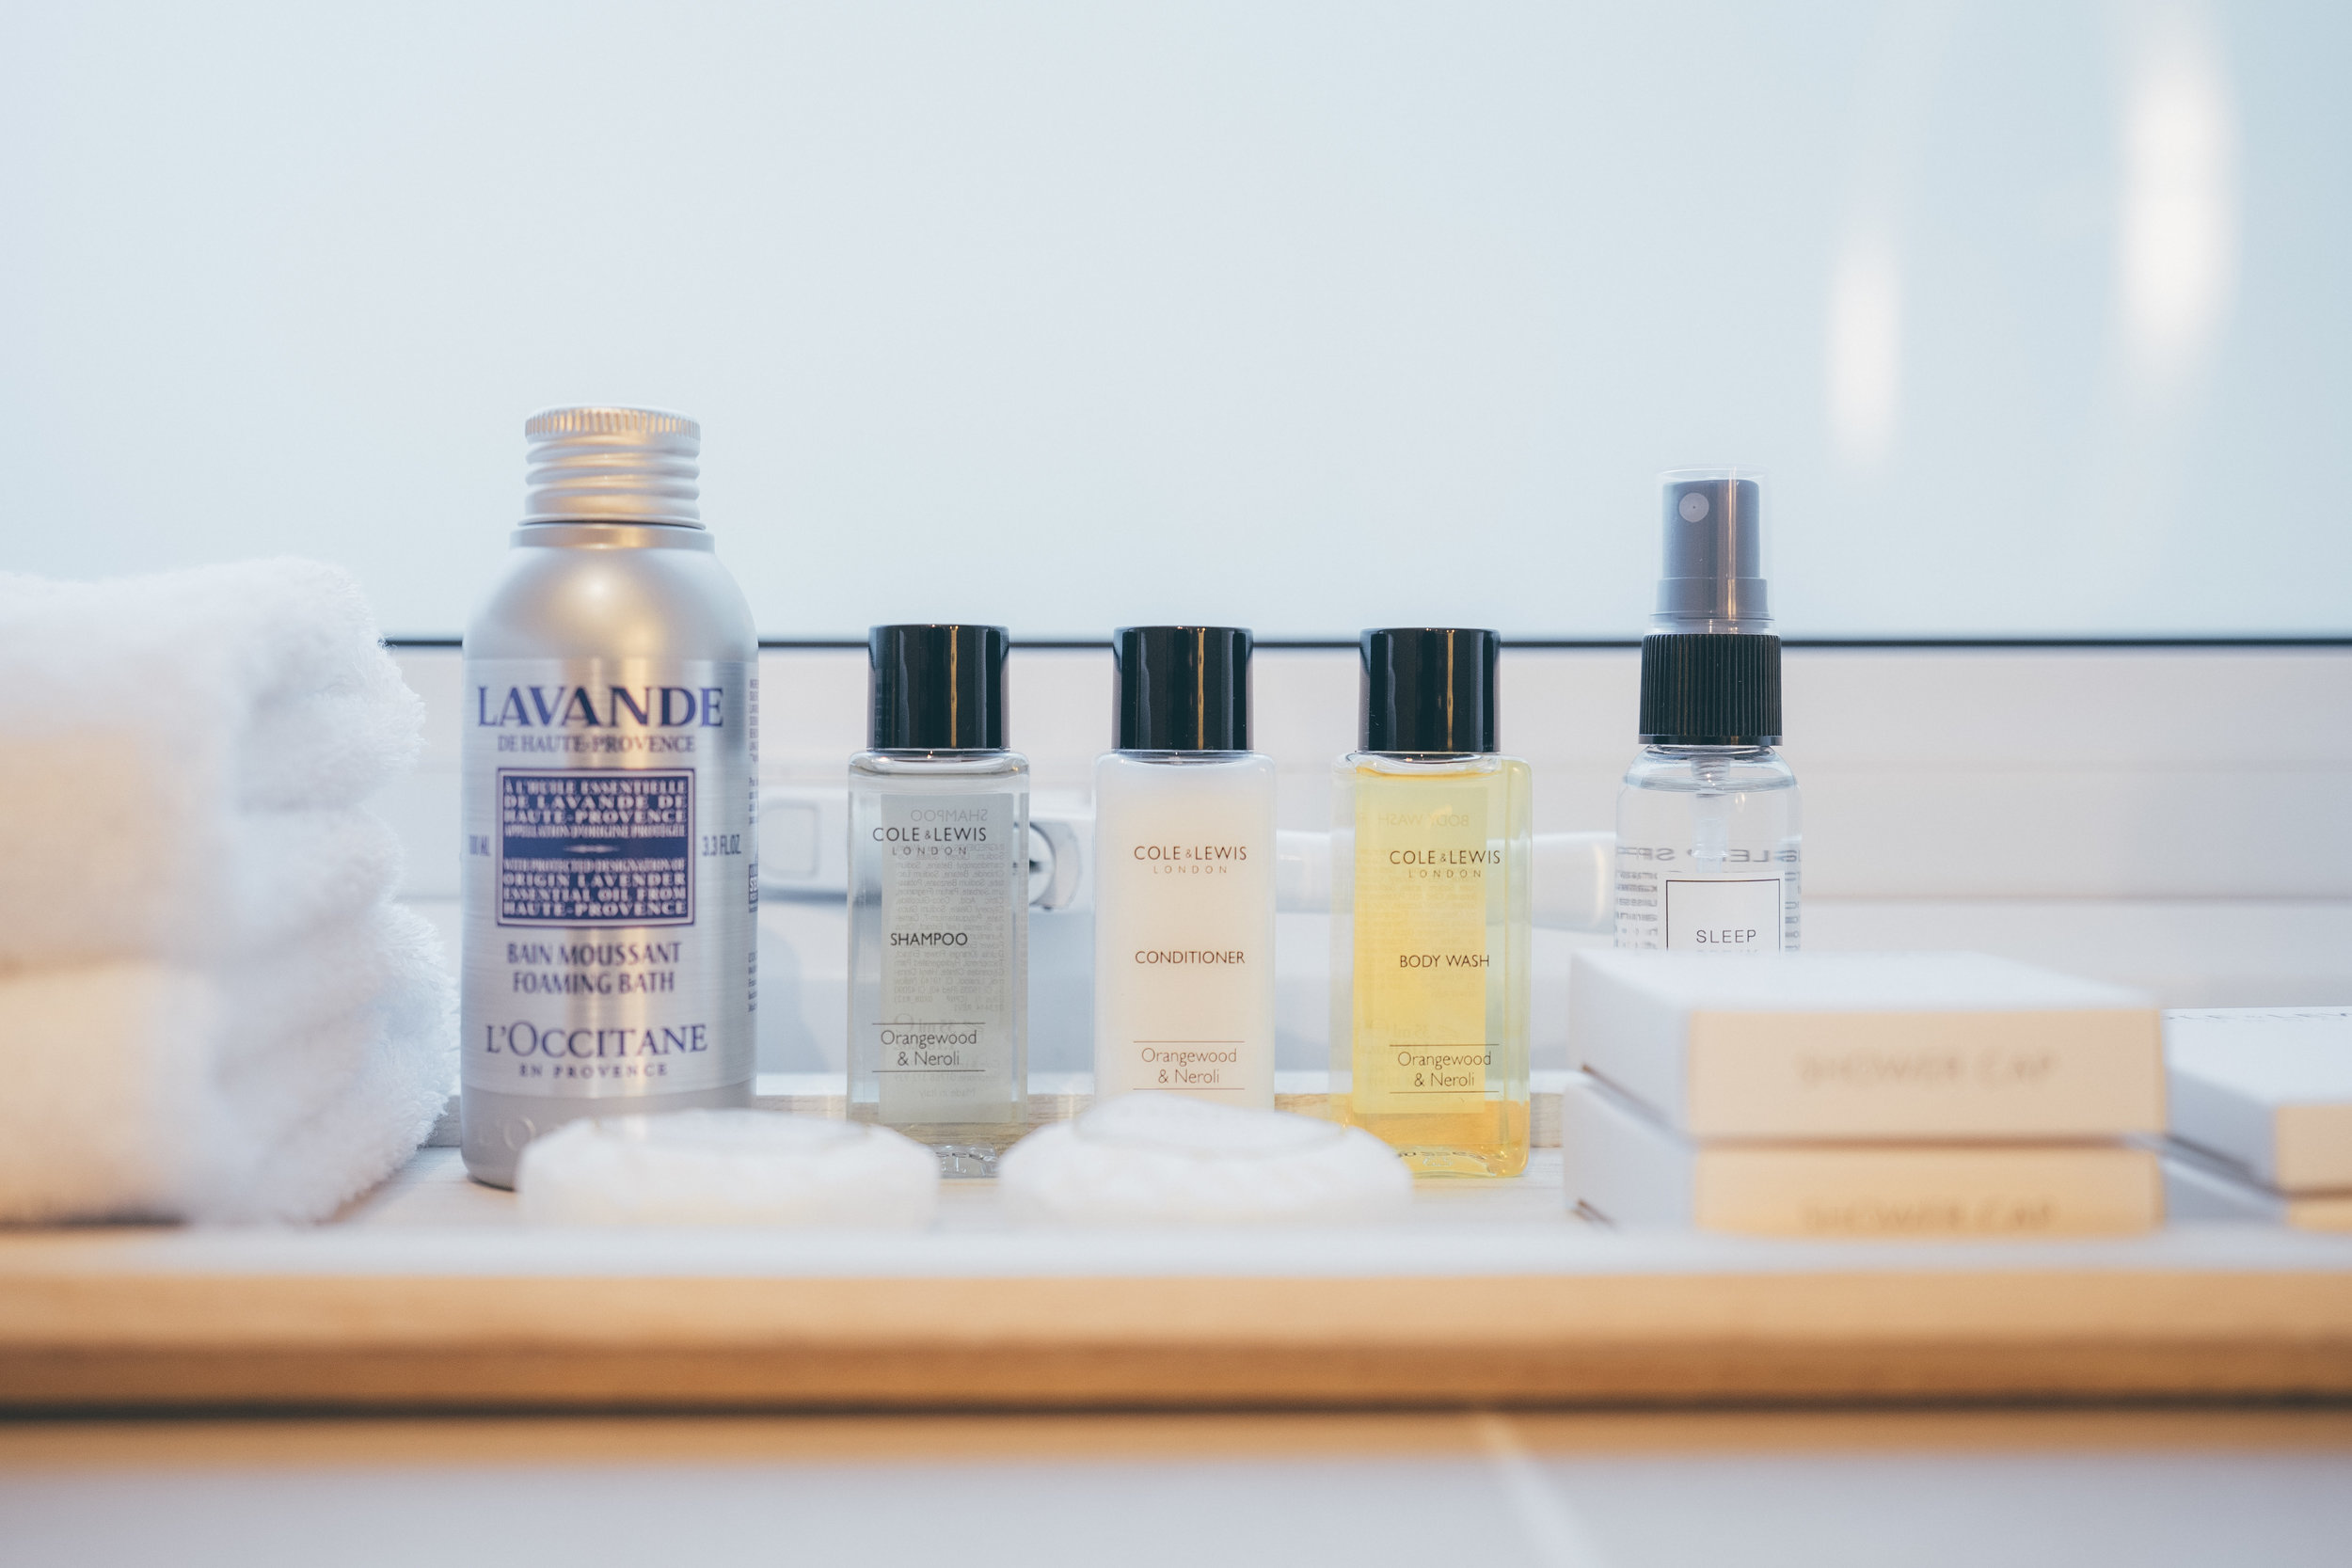 Complimentary Coles Lewis of London toiletries